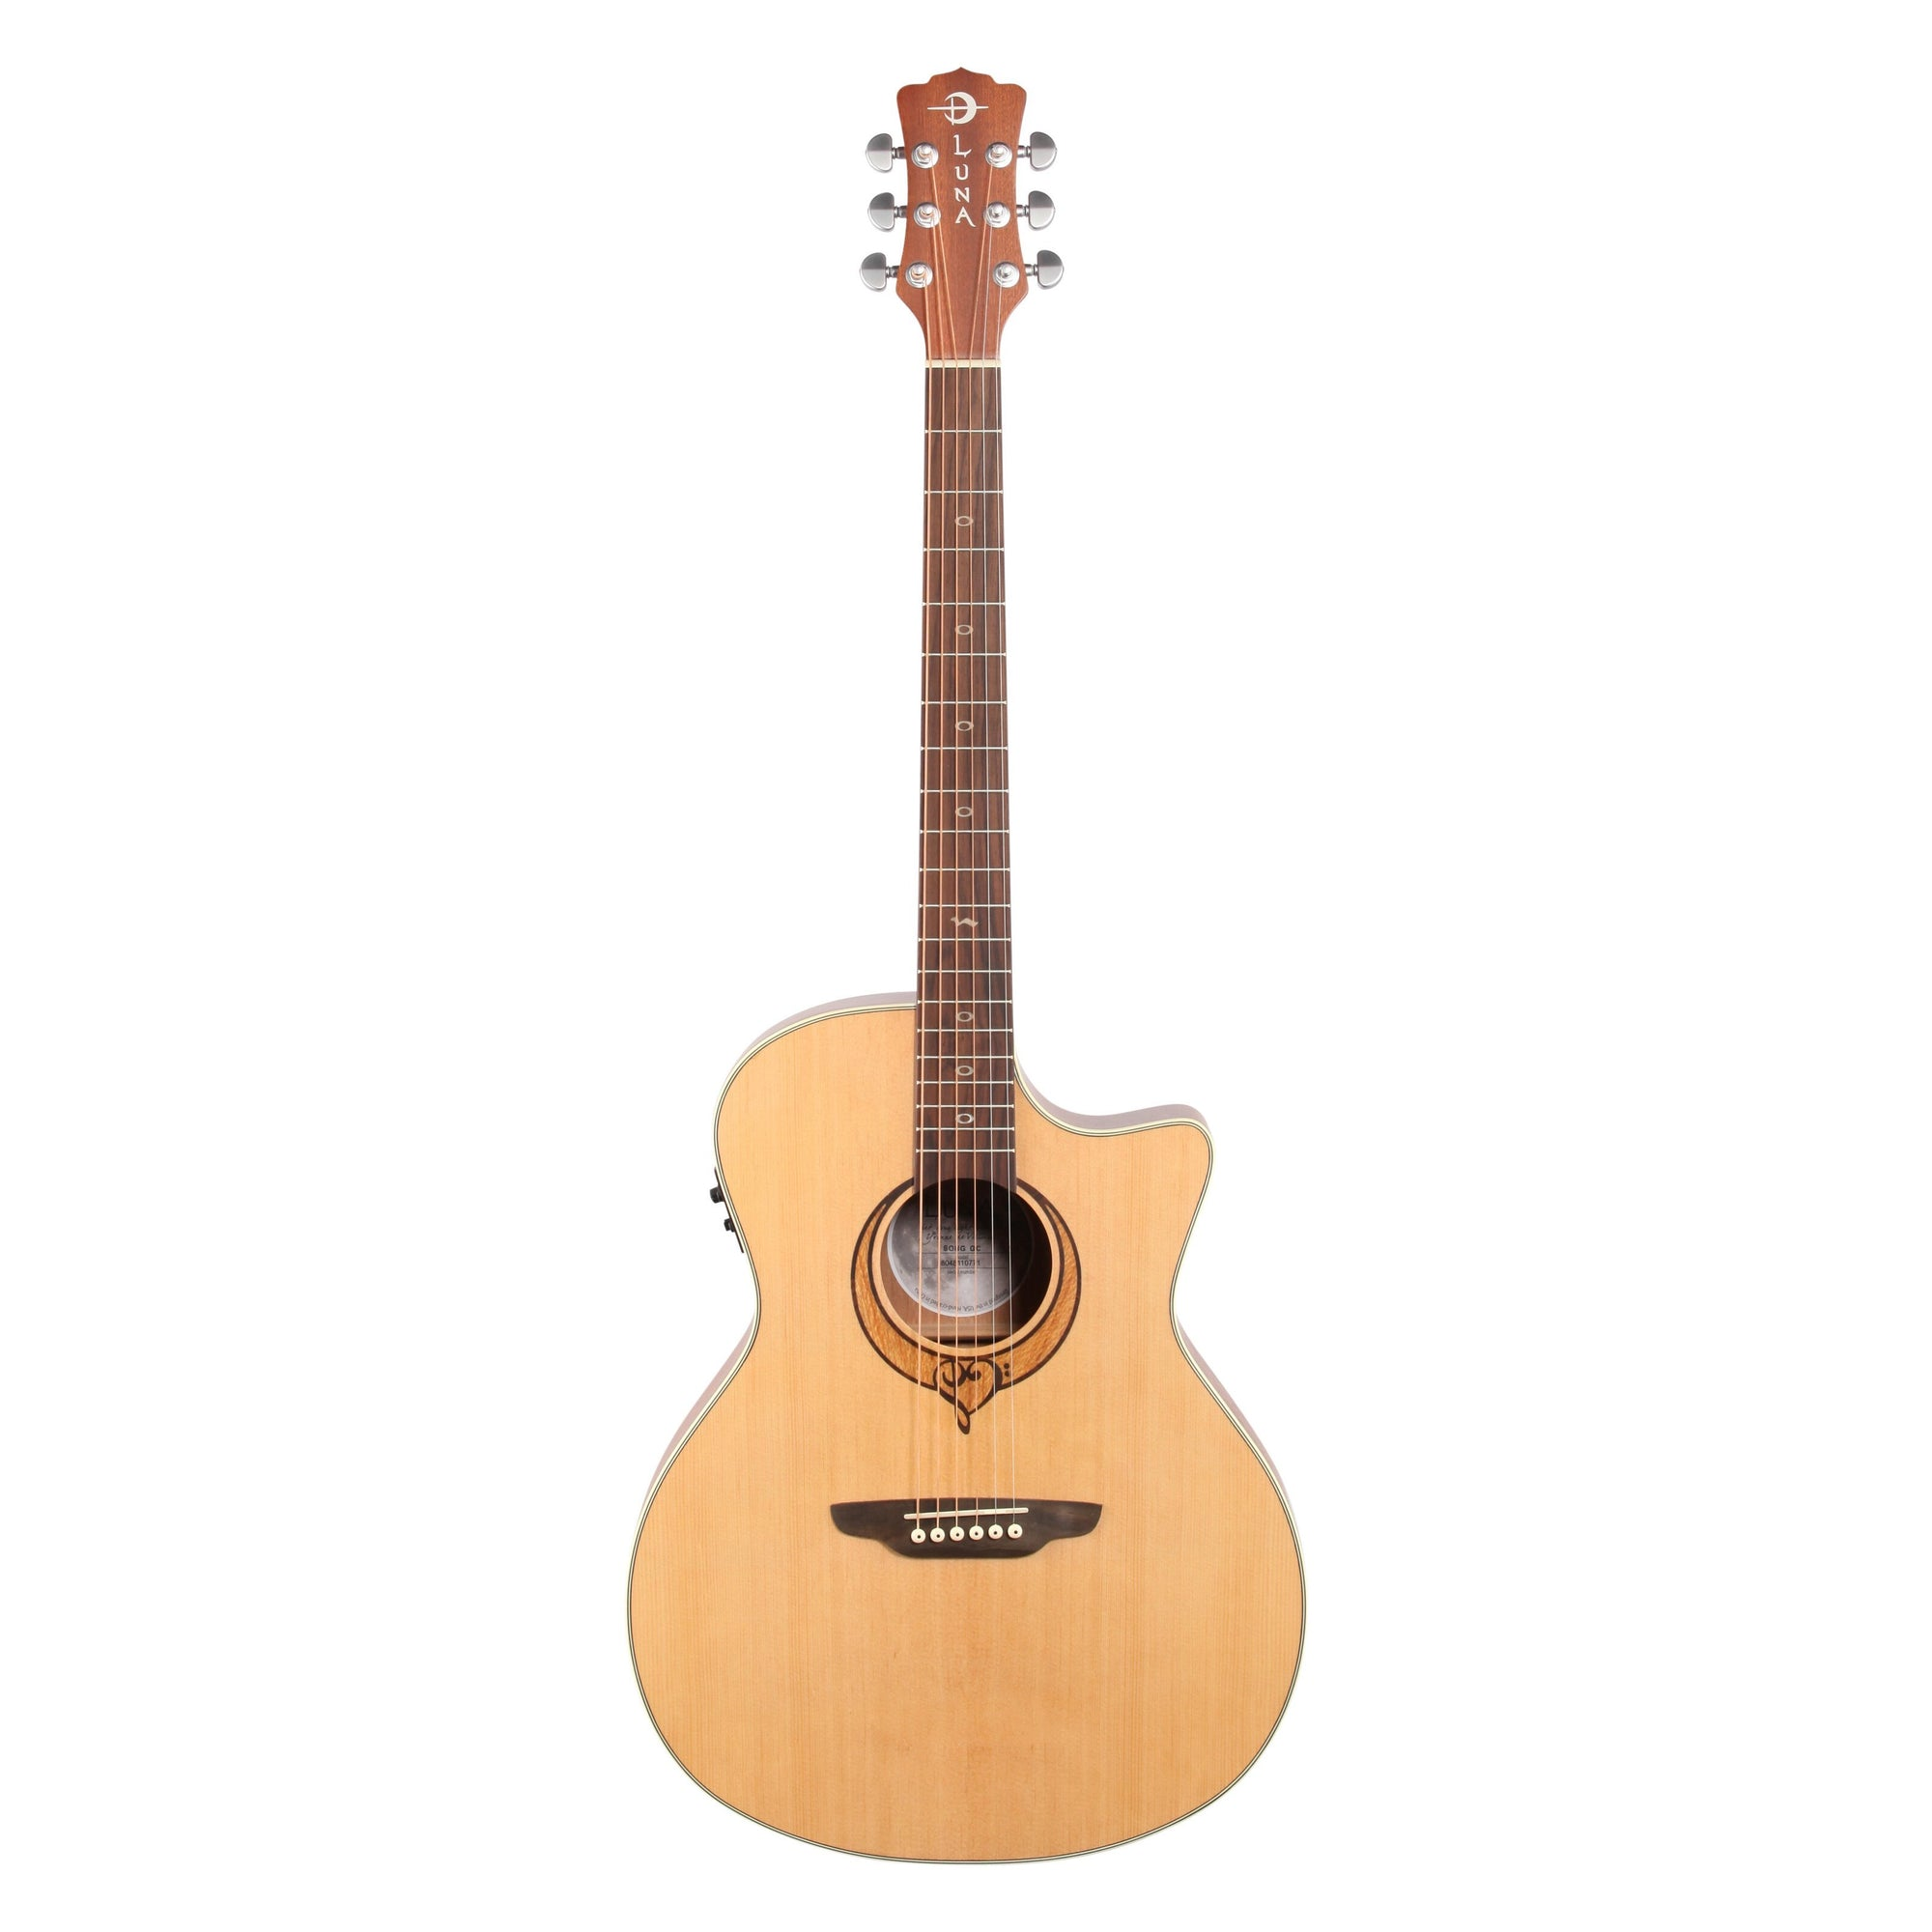 Luna Heartsong Grand Concert Acoustic-Electric Guitar with USB